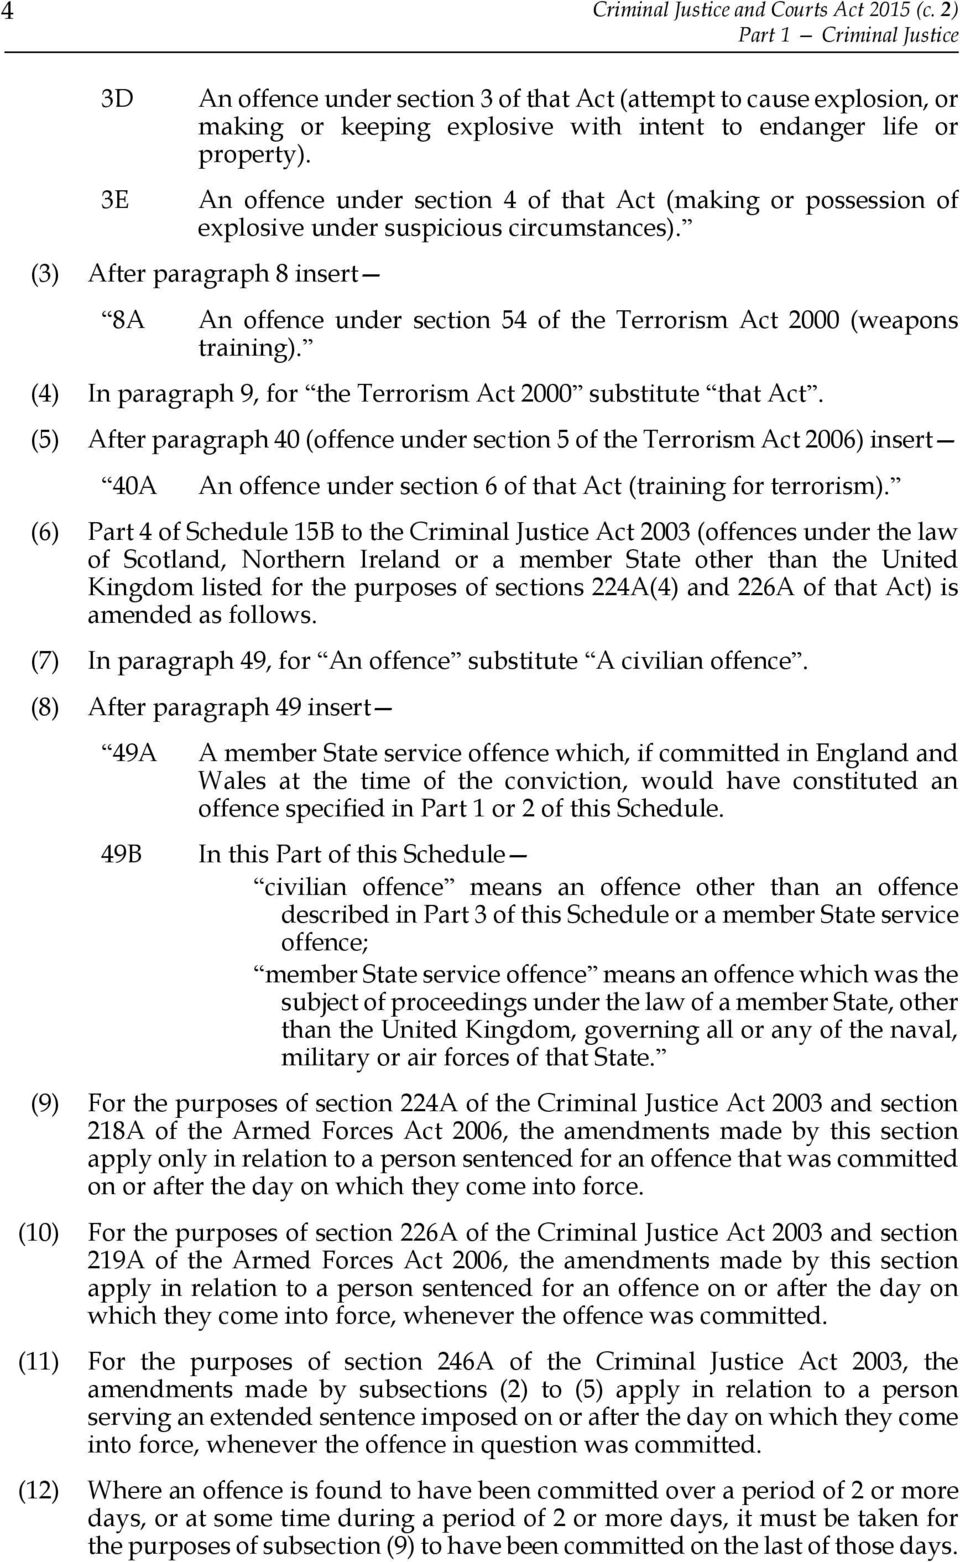 An offence under section 4 of that Act (making or possession of explosive under suspicious circumstances).